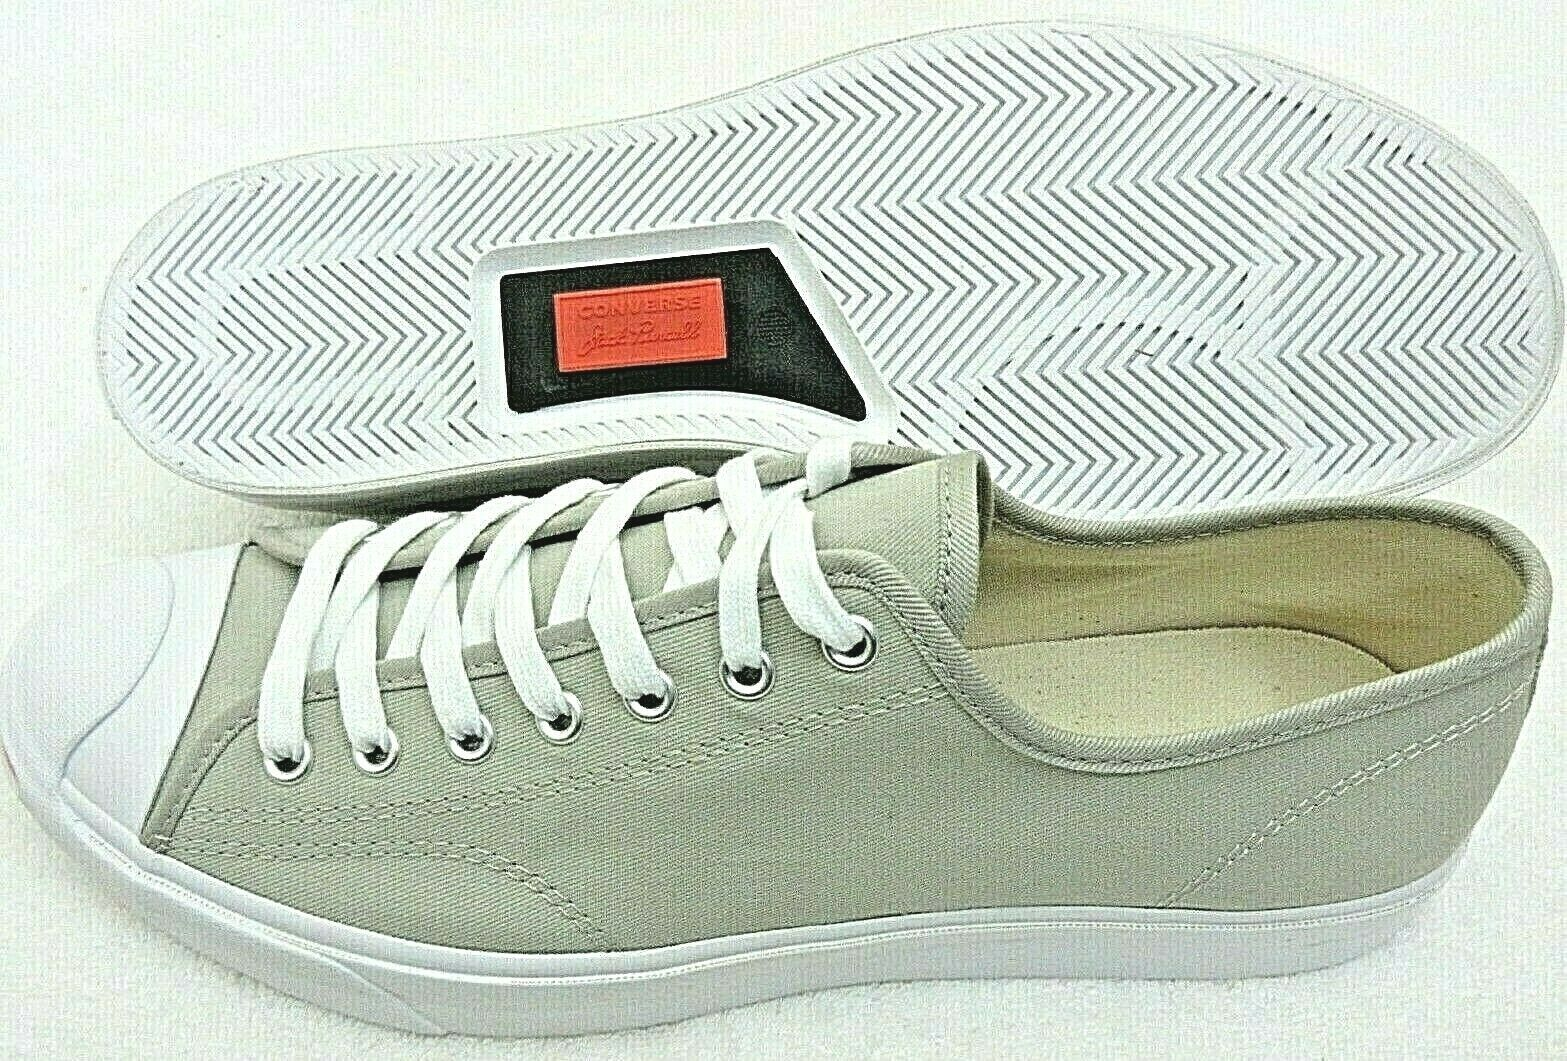 Converse Mens Jack Purcell OX Canvas Birch Bark White Habanero Red Shoes 10.5 image 2